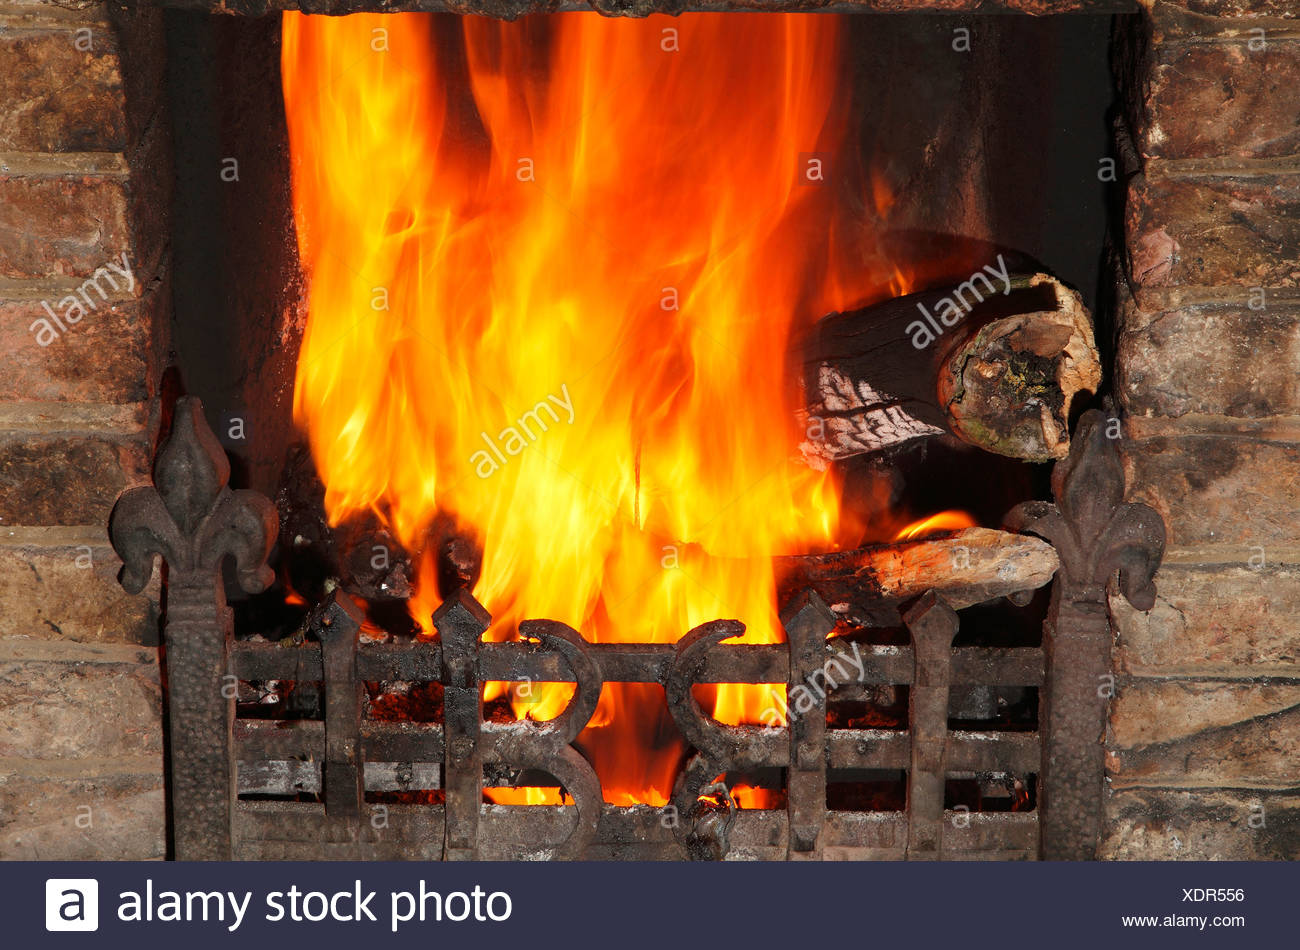 Fire in domestic hearth, heat flame flames heating fireside warmth fires grate burning wood coal home fires - Stock Image